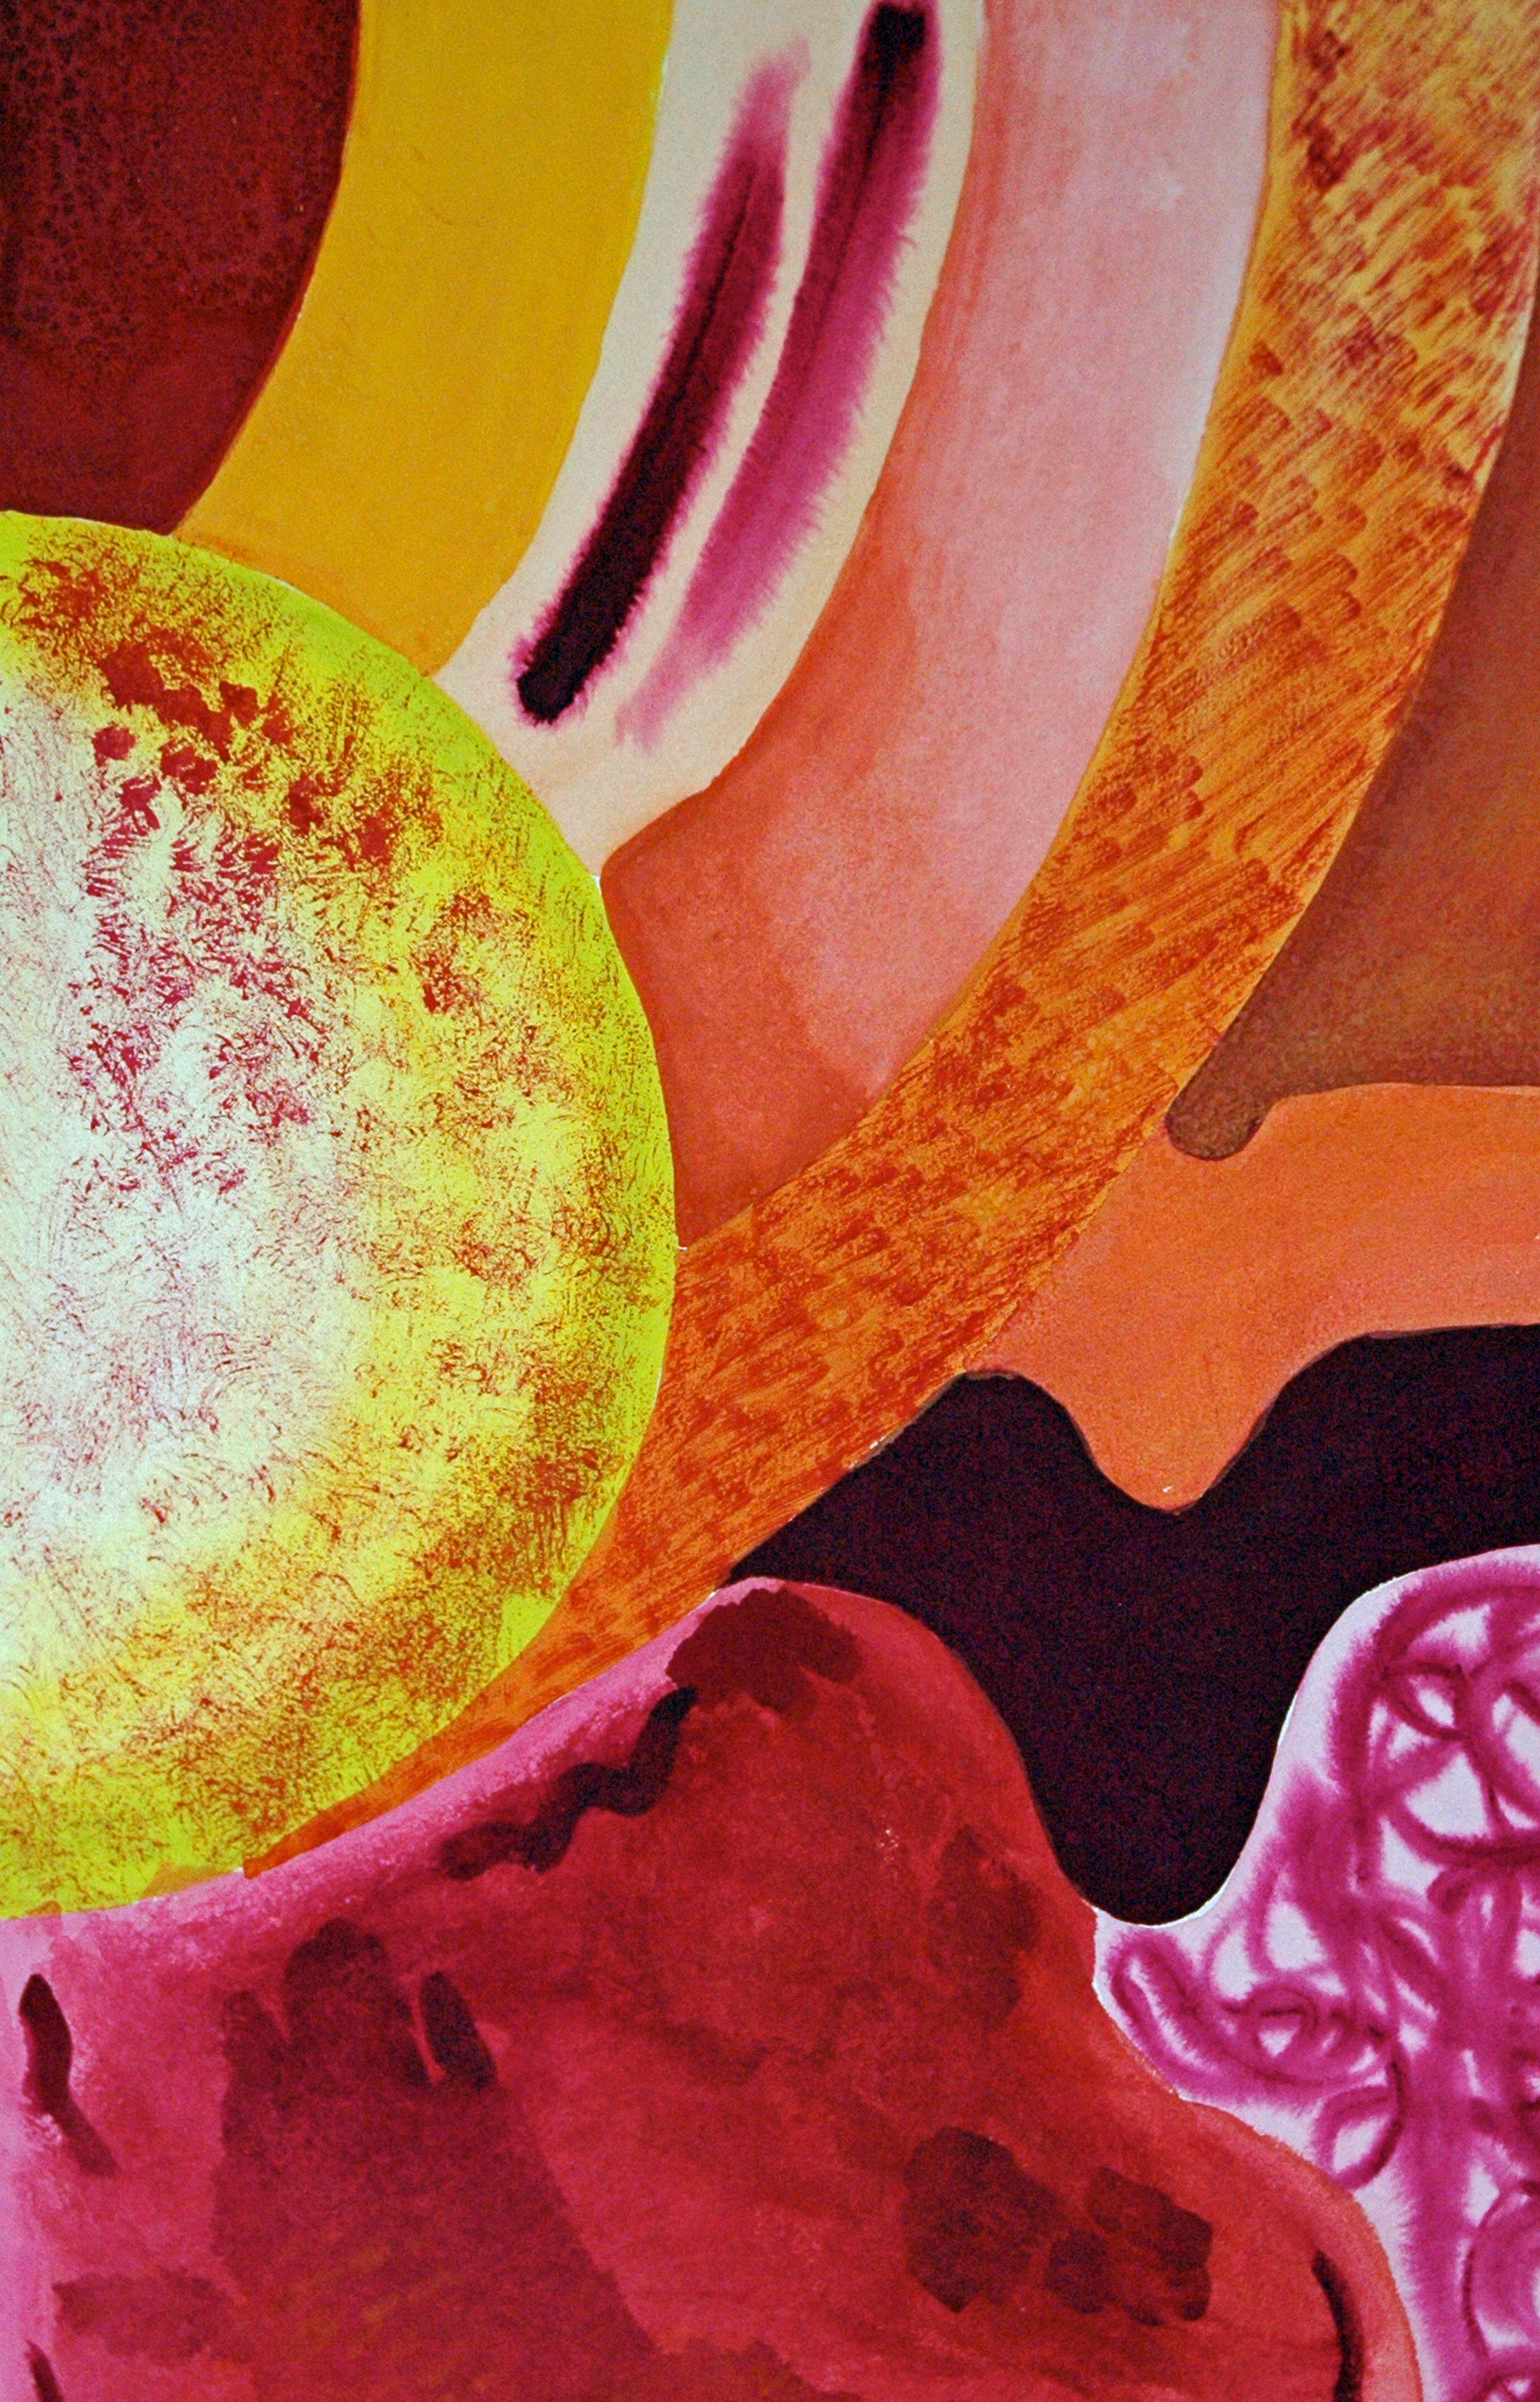 Your story   21 22 x 13.5 22   watercolour on paper mounted on board   resin coat rprrao